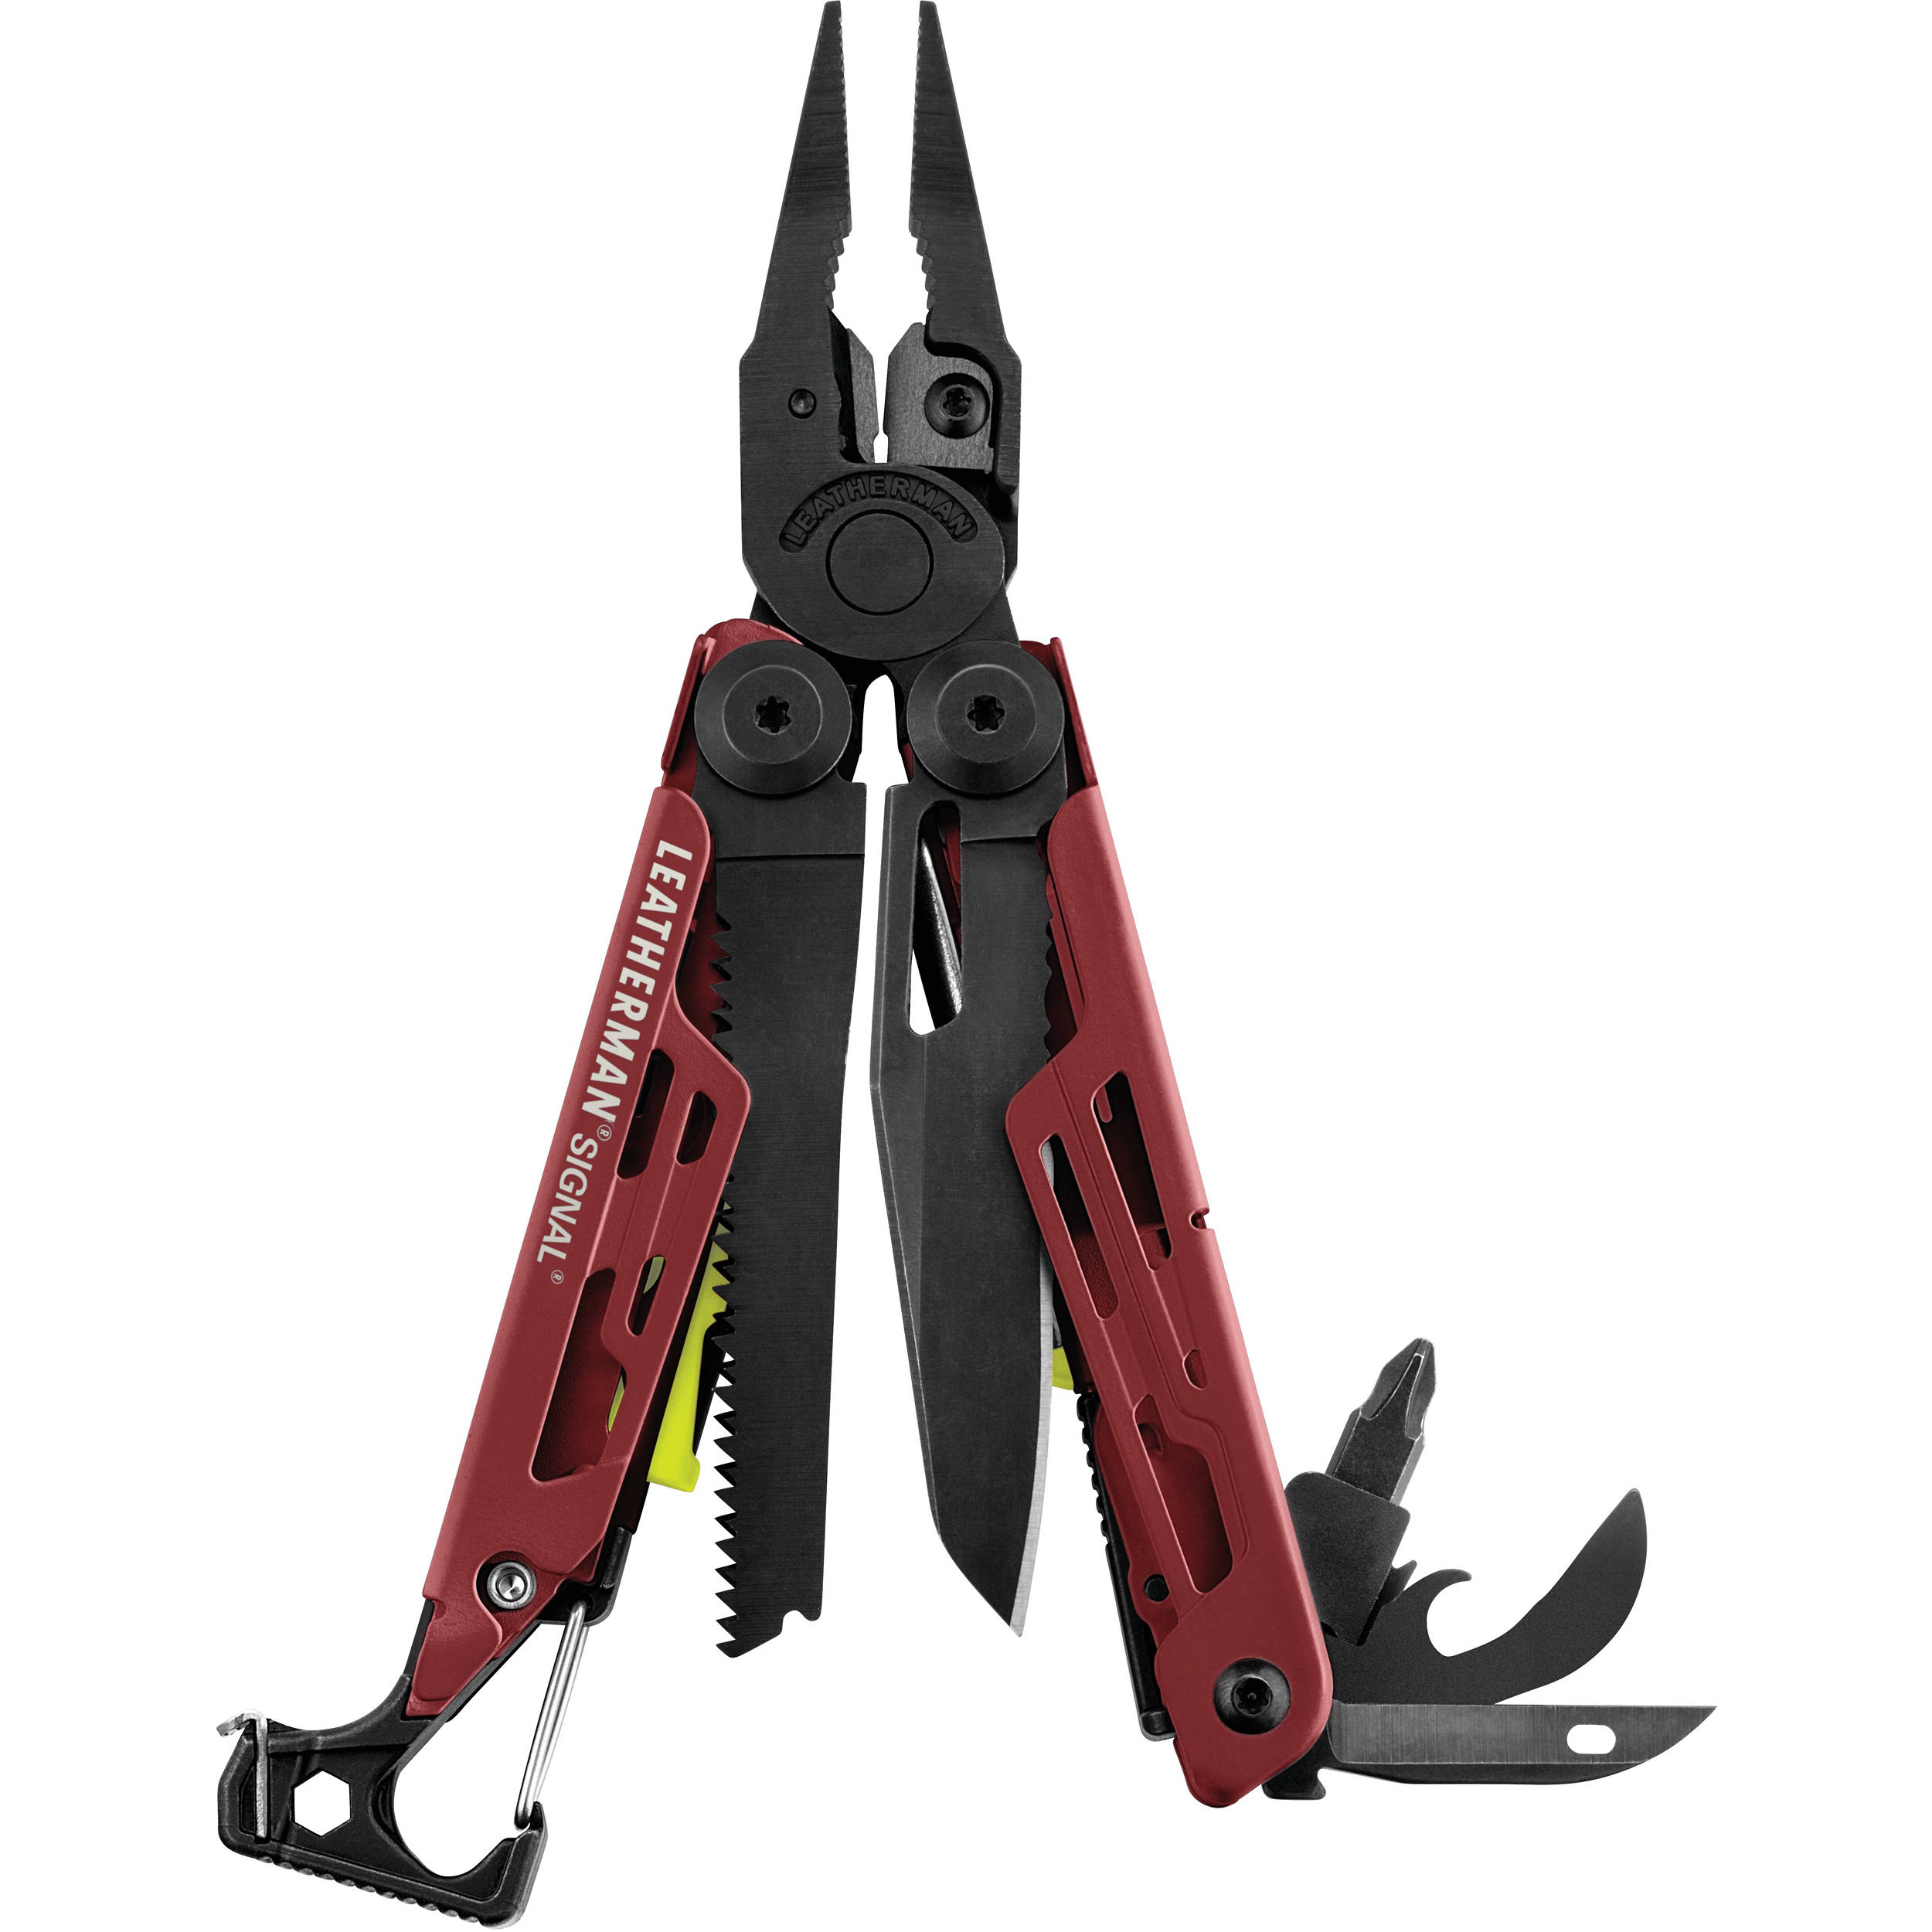 Leatherman Signal Multi-Tool with Black Nyl 832743 B&H Photo